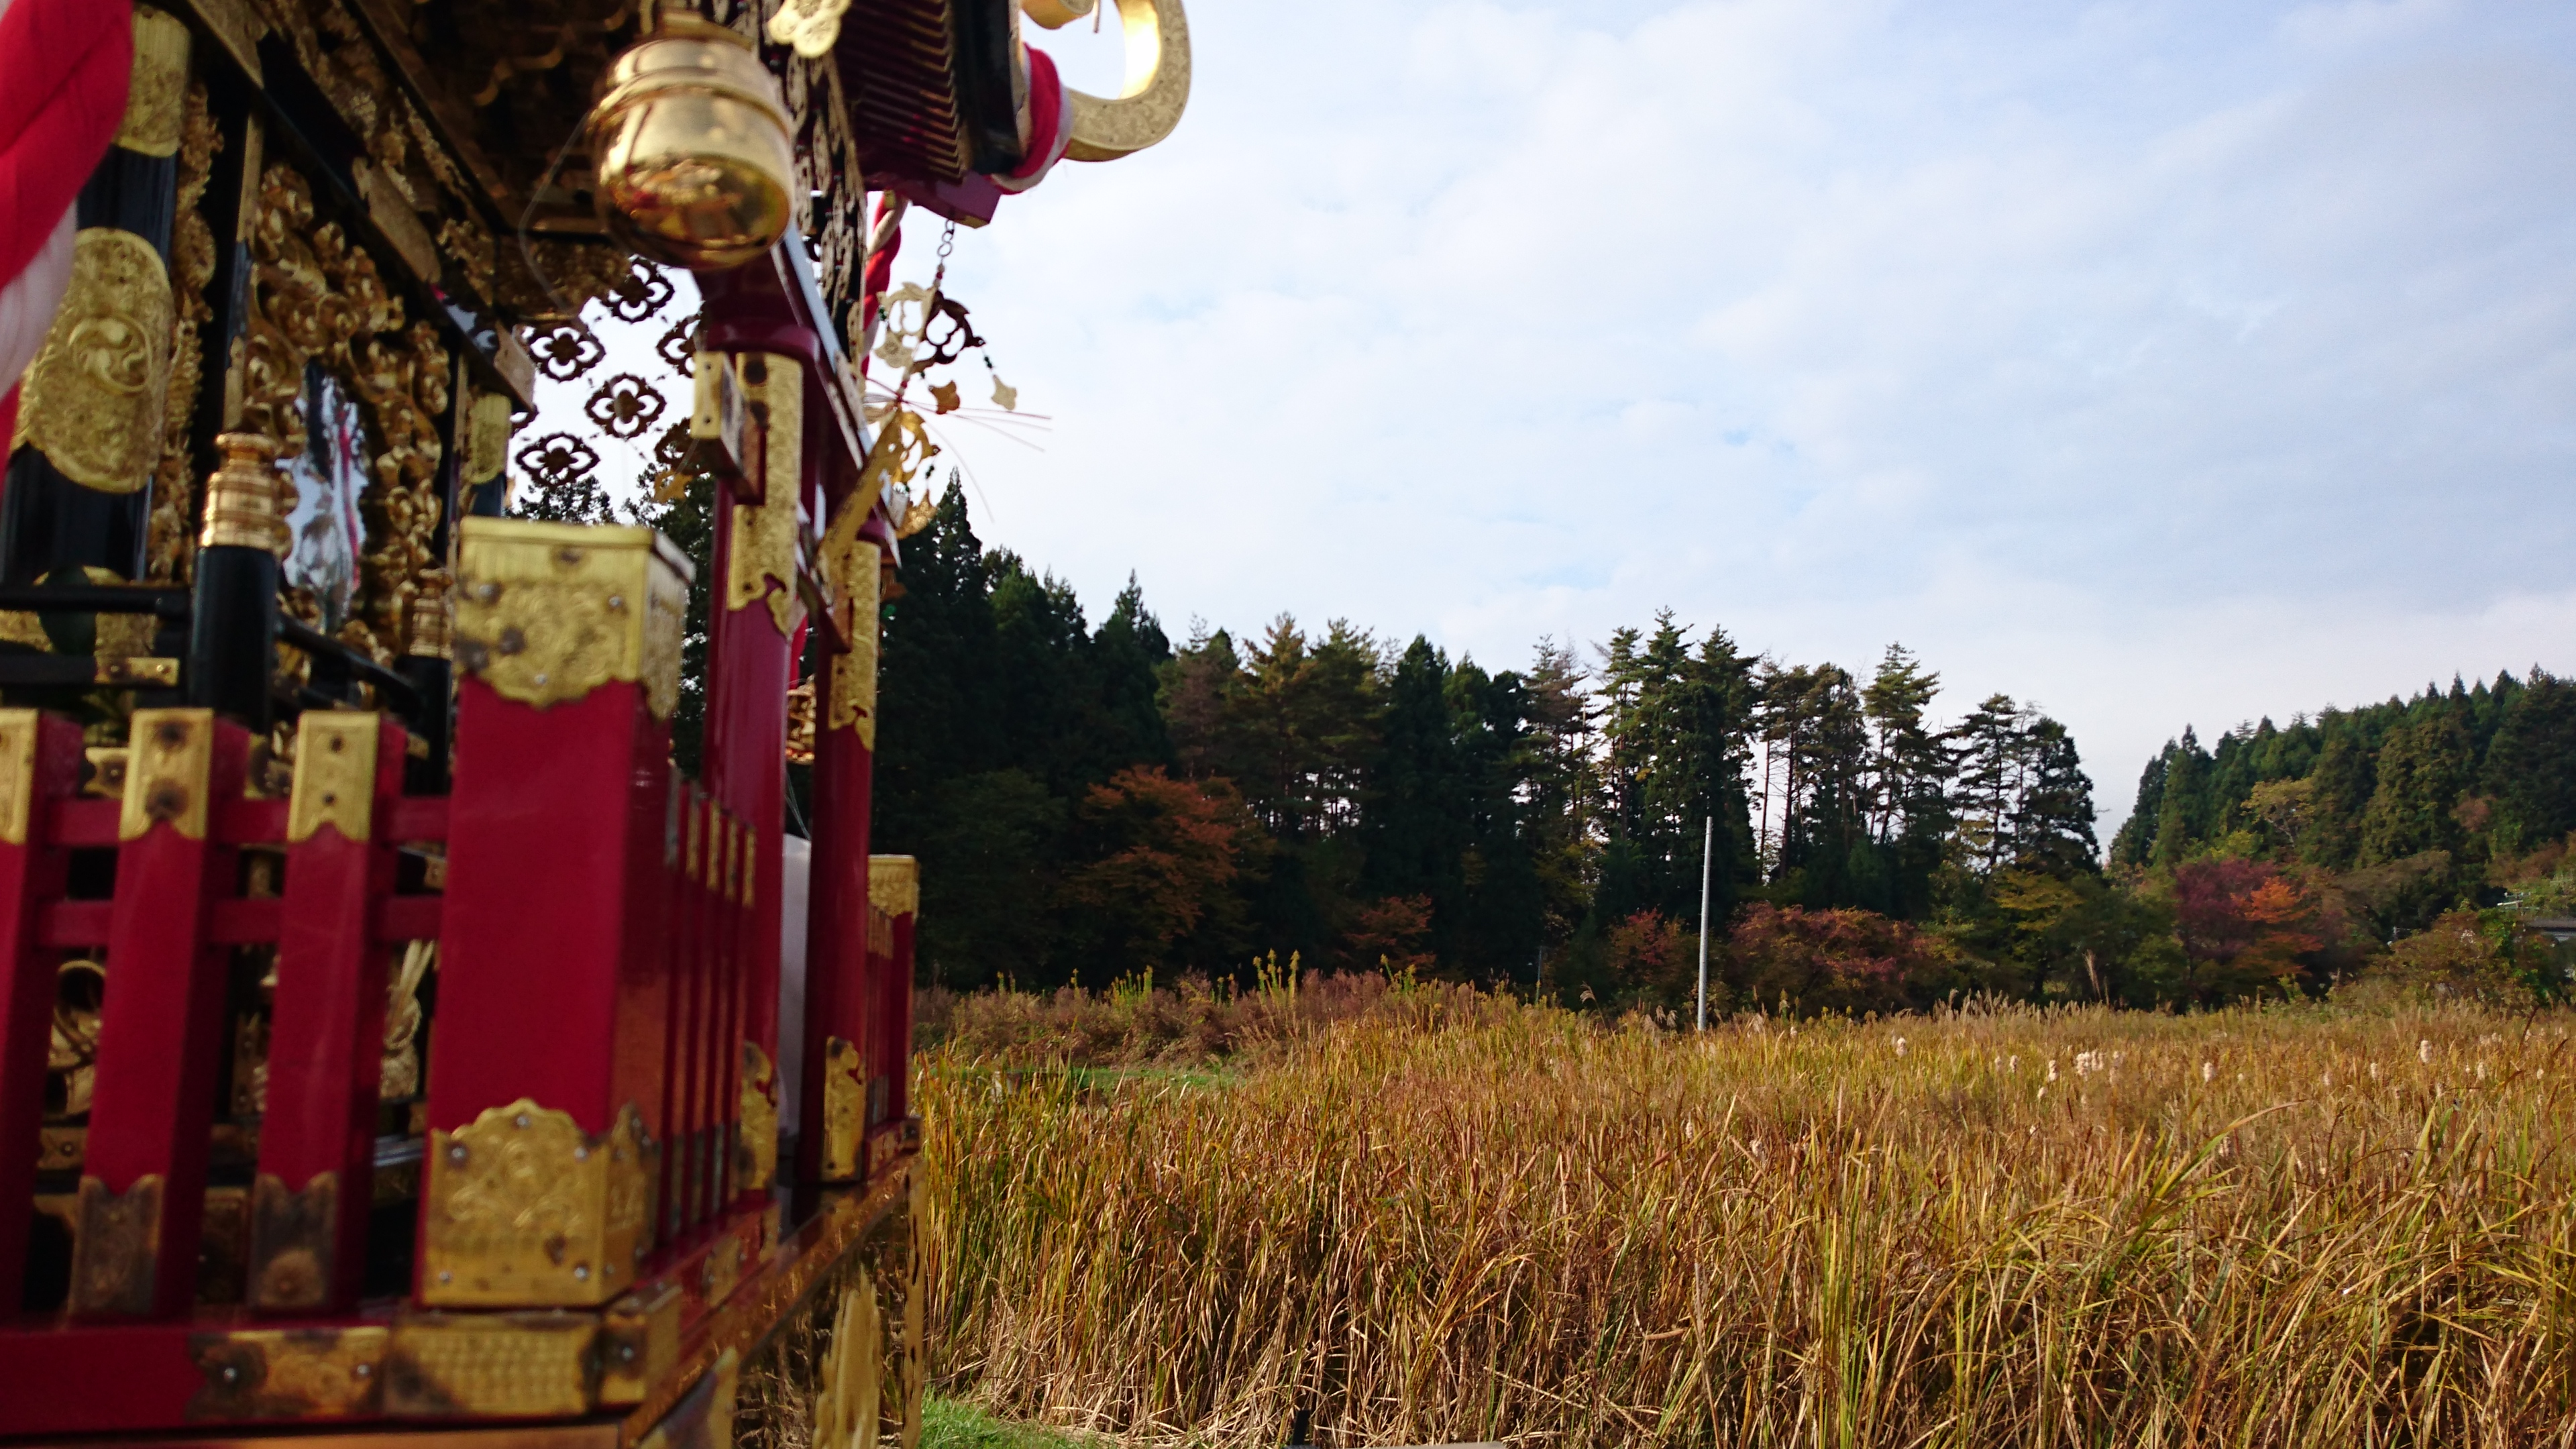 Picture of the a part of the portable shrine overlooking a field of paddy